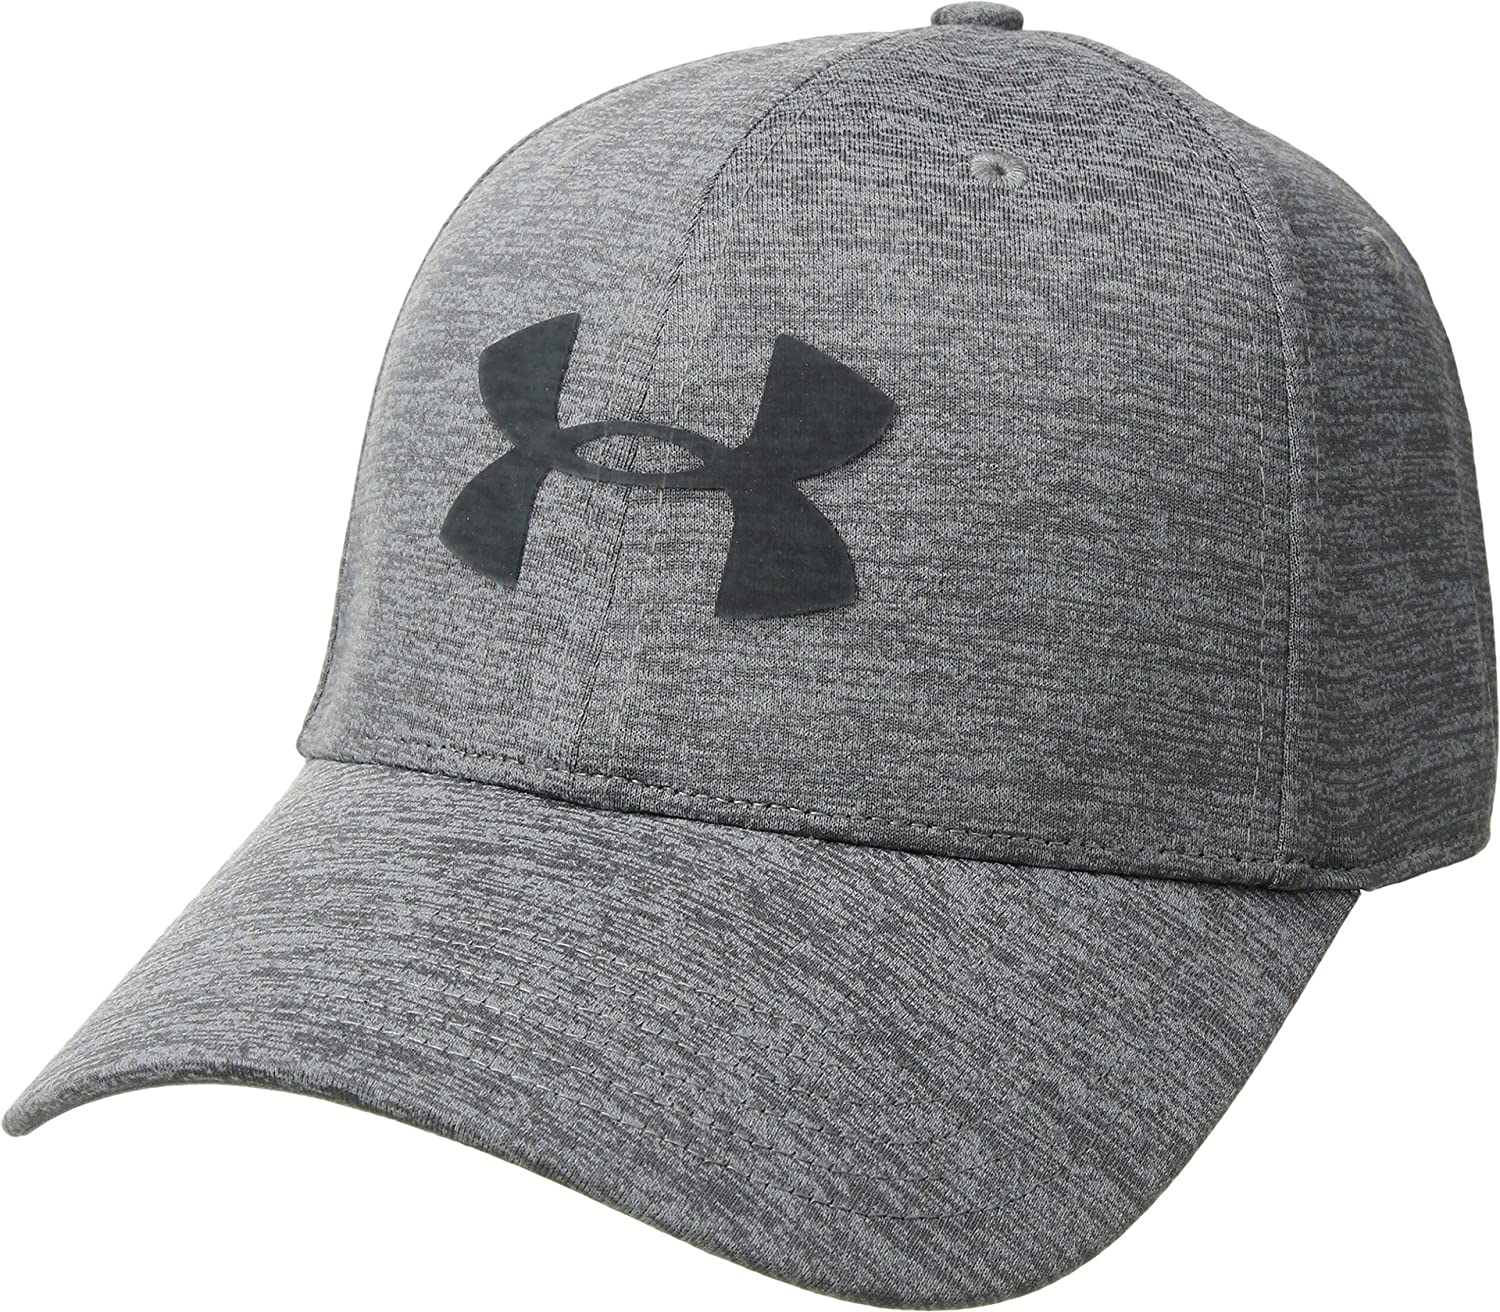 2e0b82fce06 Amazon.com  Under Armour Men s Armour Twist 2.0 Cap  Clothing